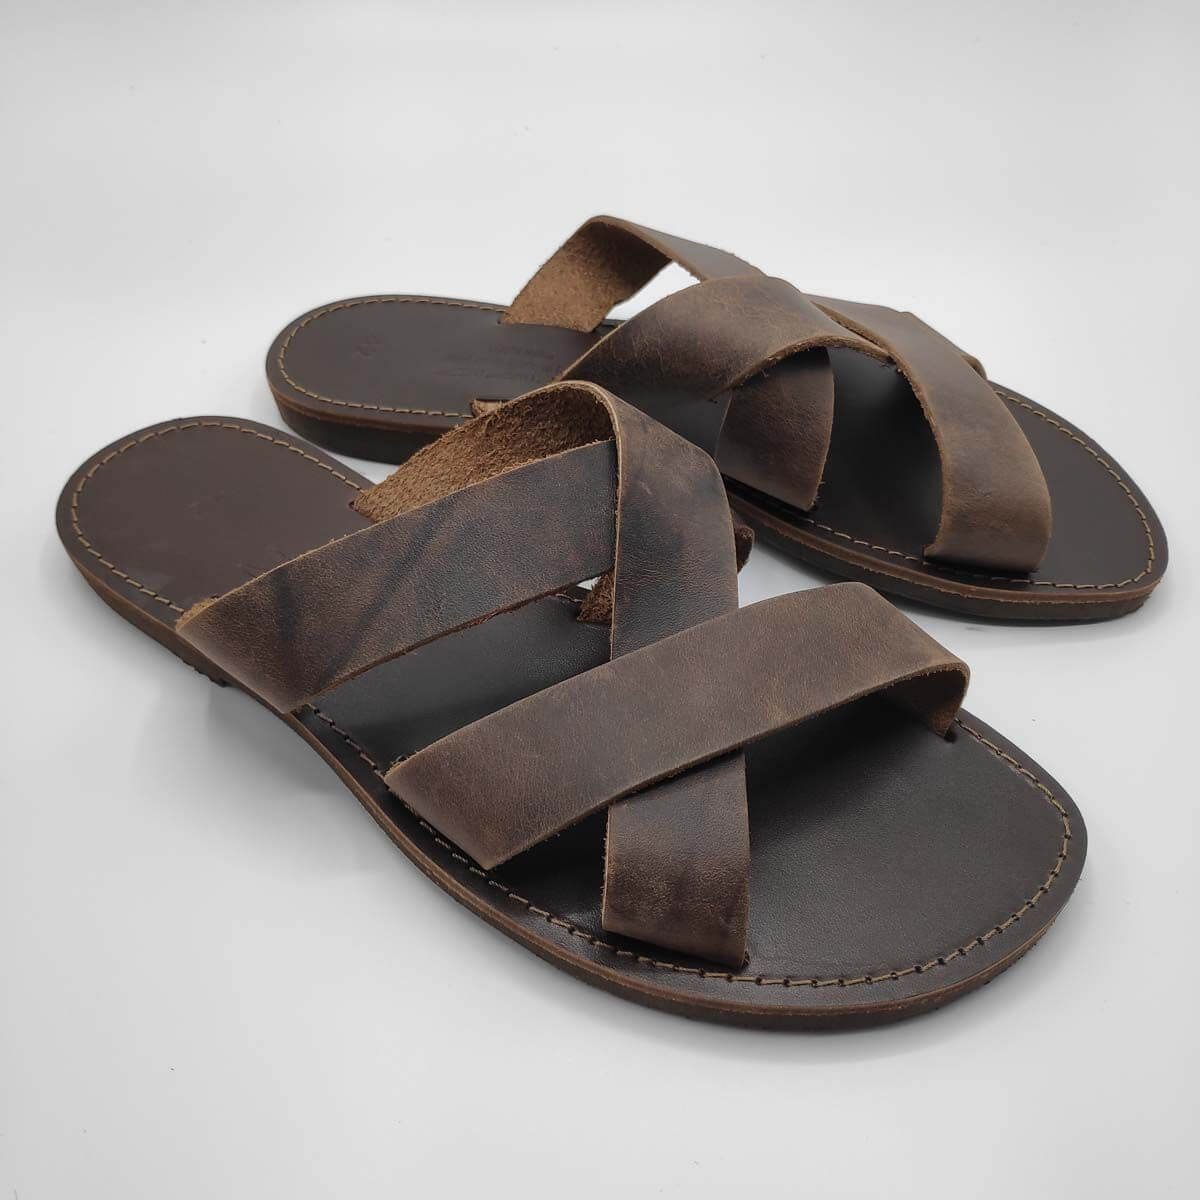 leather sandals for men brown three straps criss cross side view - Avithos Men